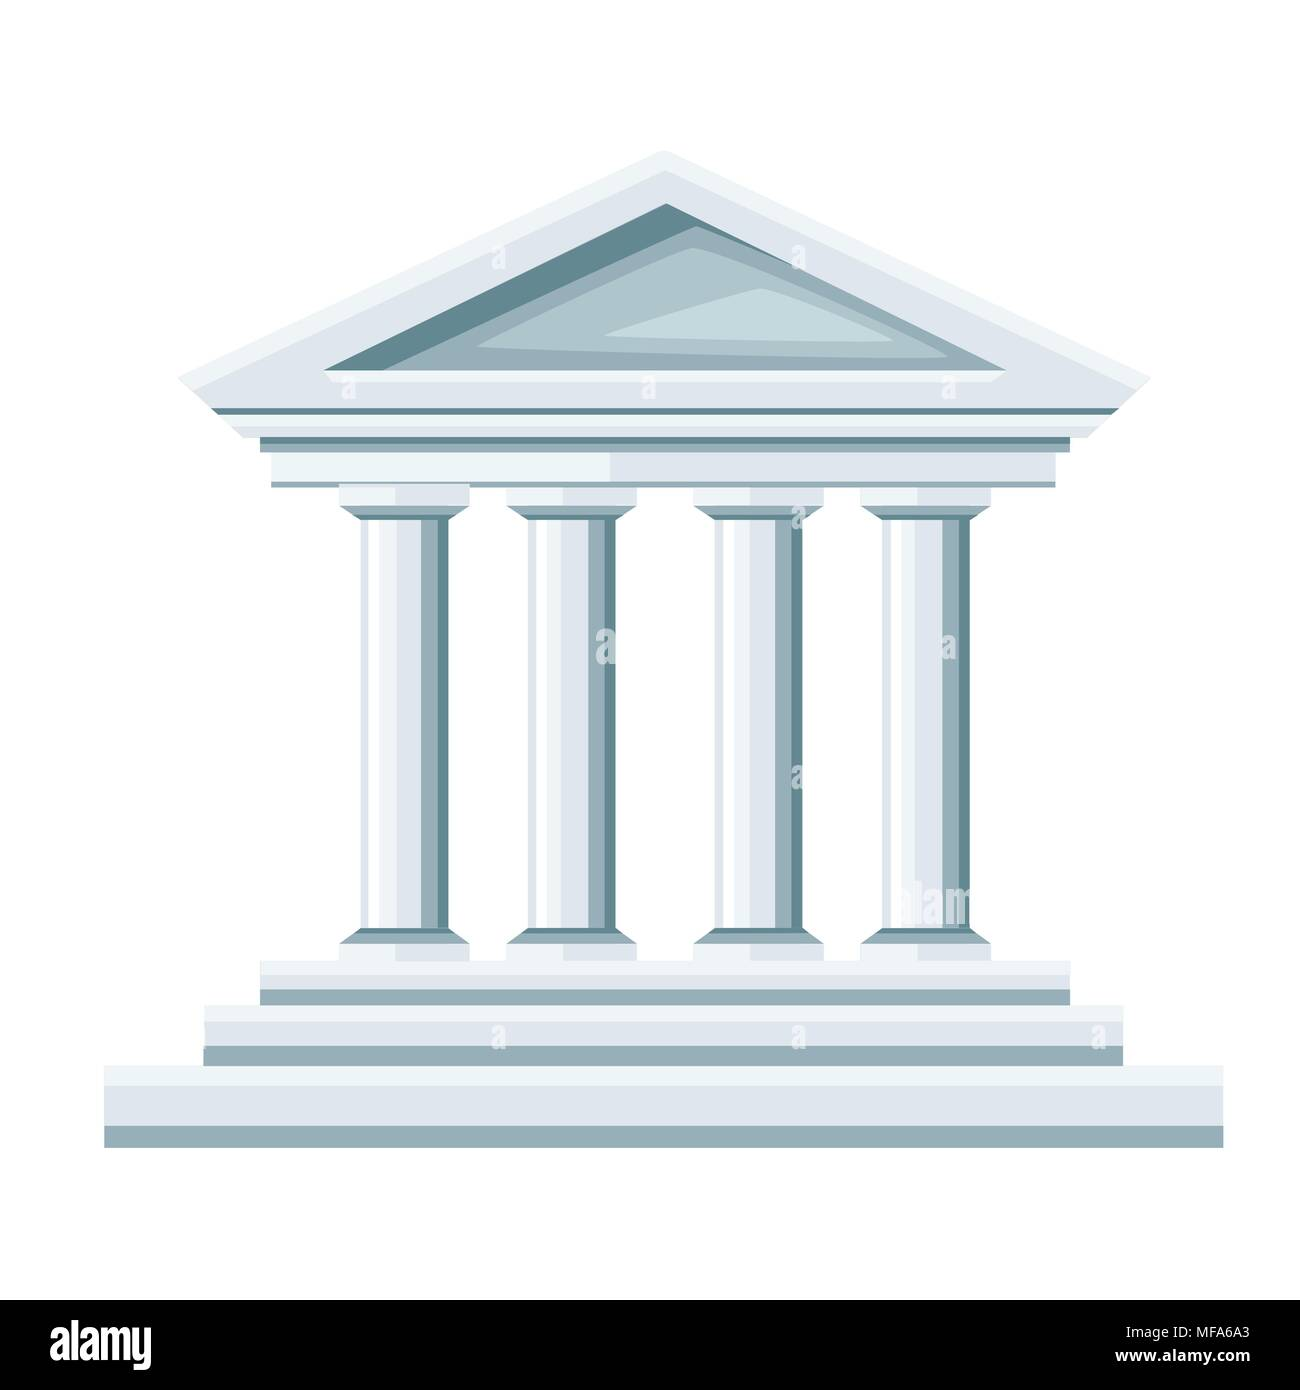 Greek temple illustration. Bank icon. Flat style design. Vector illustration isolated on white background. Web site page and mobile app. - Stock Vector